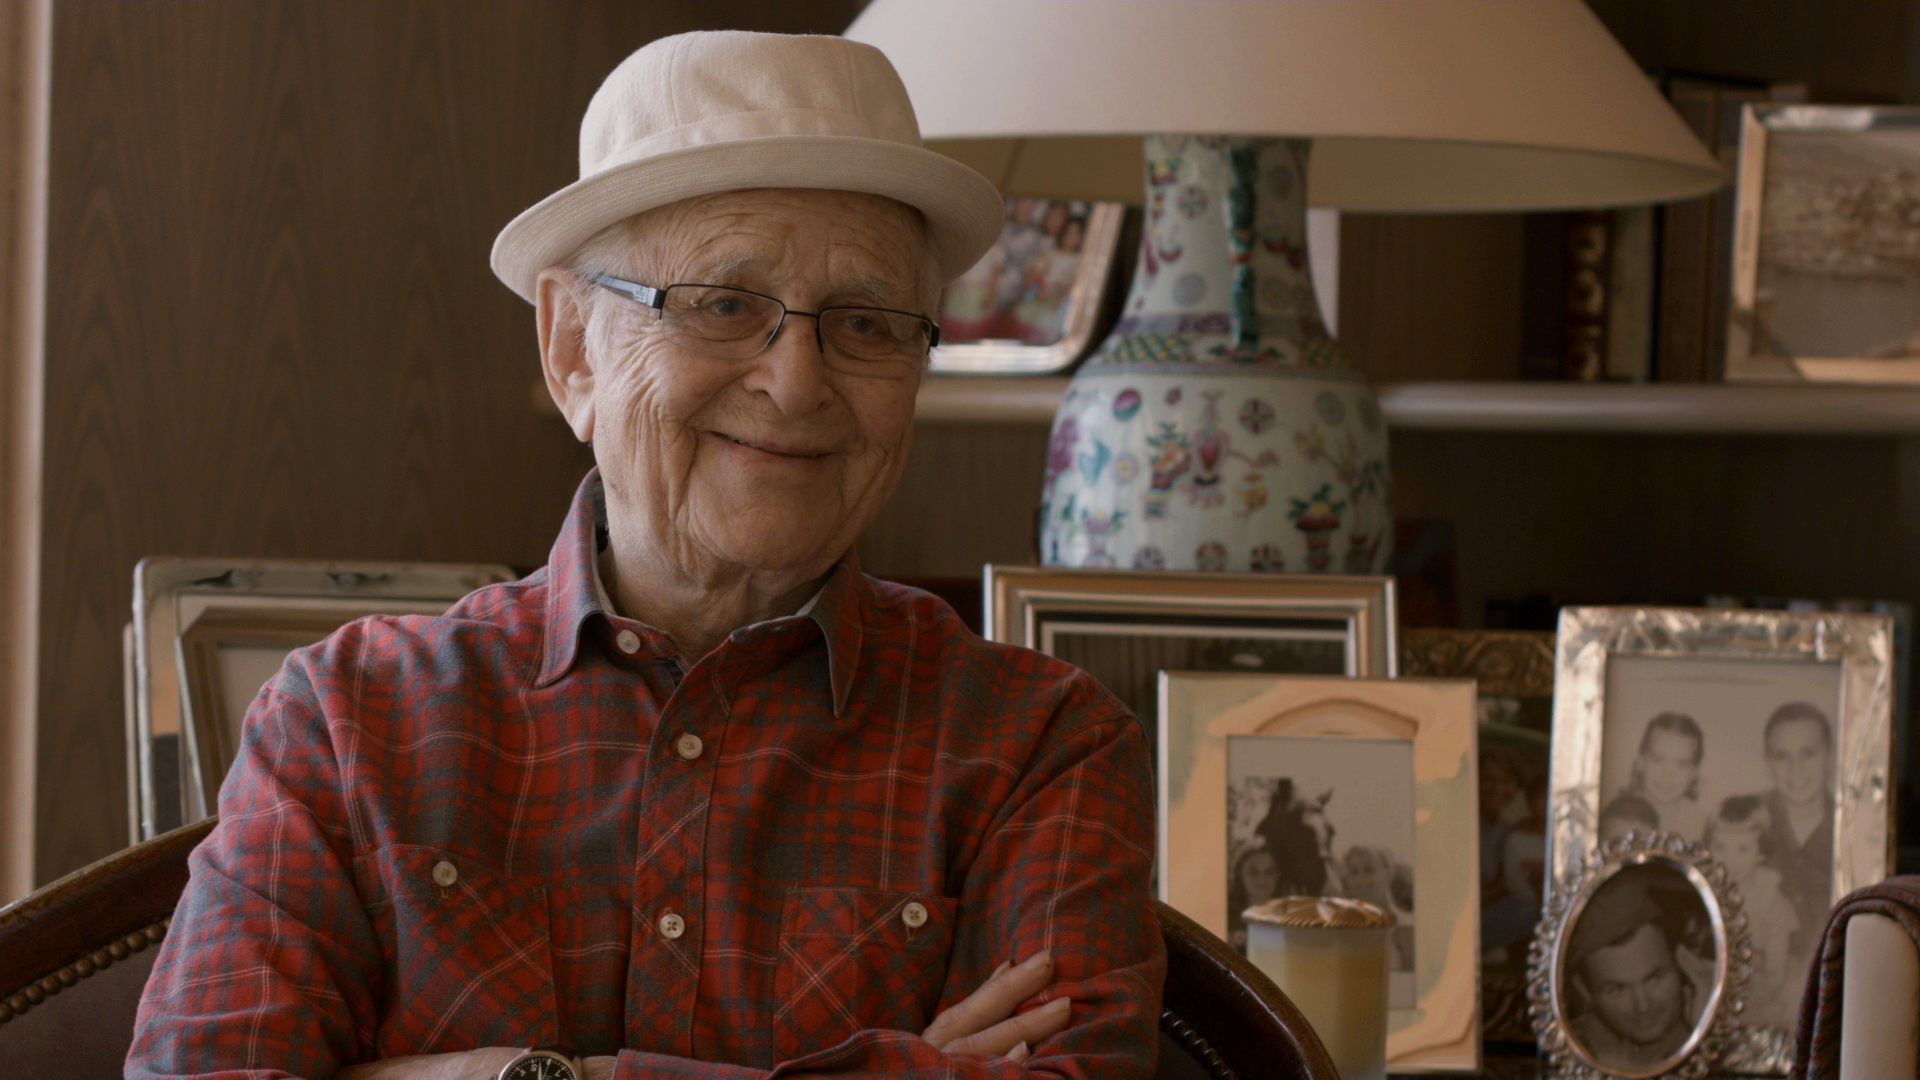 Norman Lear,   Creator of All in the Family, One Day at a Time, Good Times, The Jeffersons, Maude